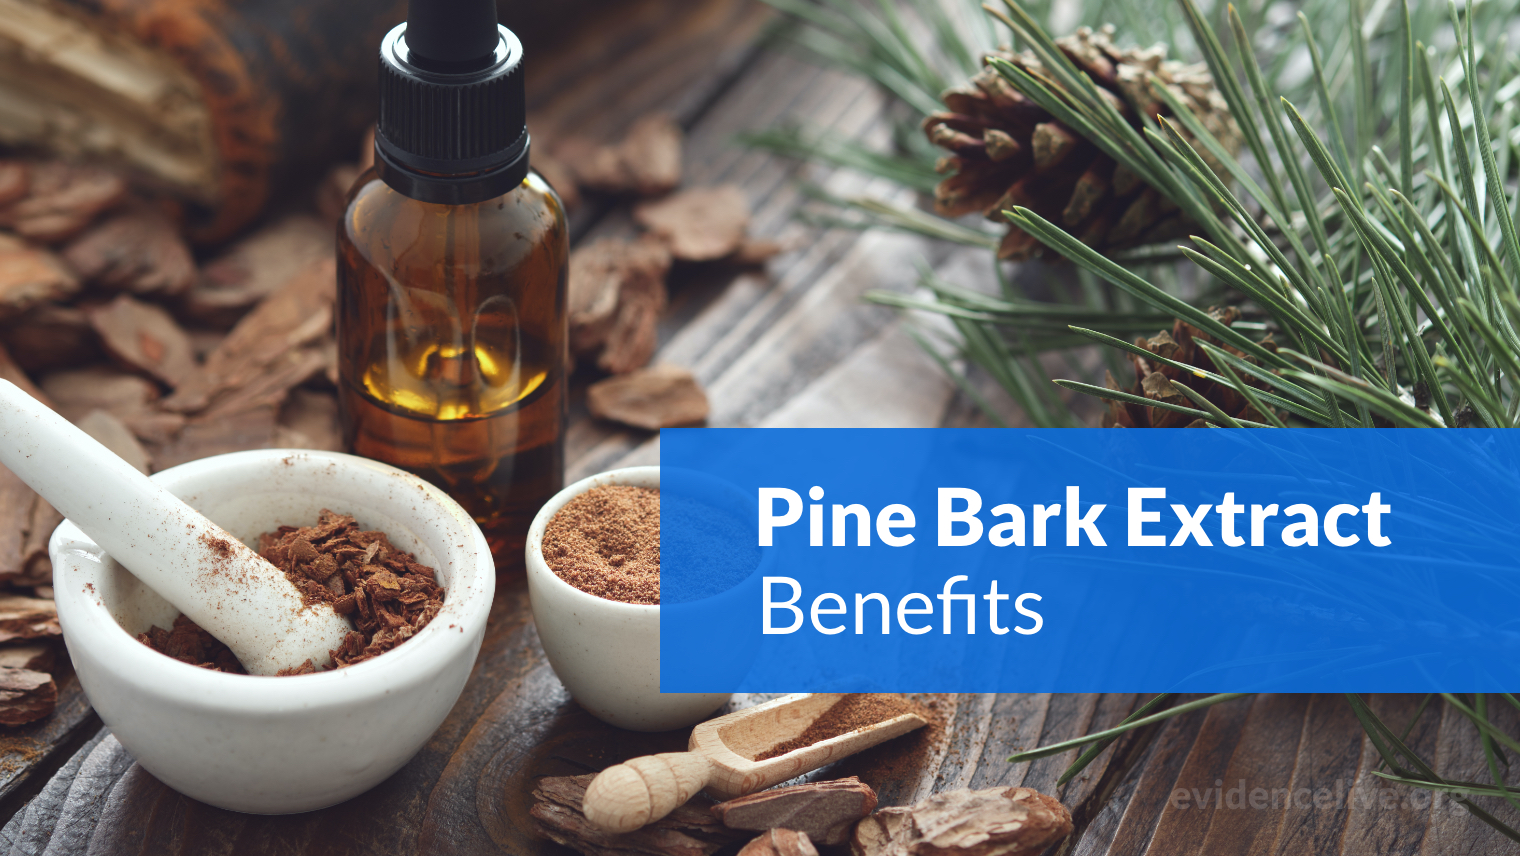 Pine Bark Extract Benefits: What Is It Good For?